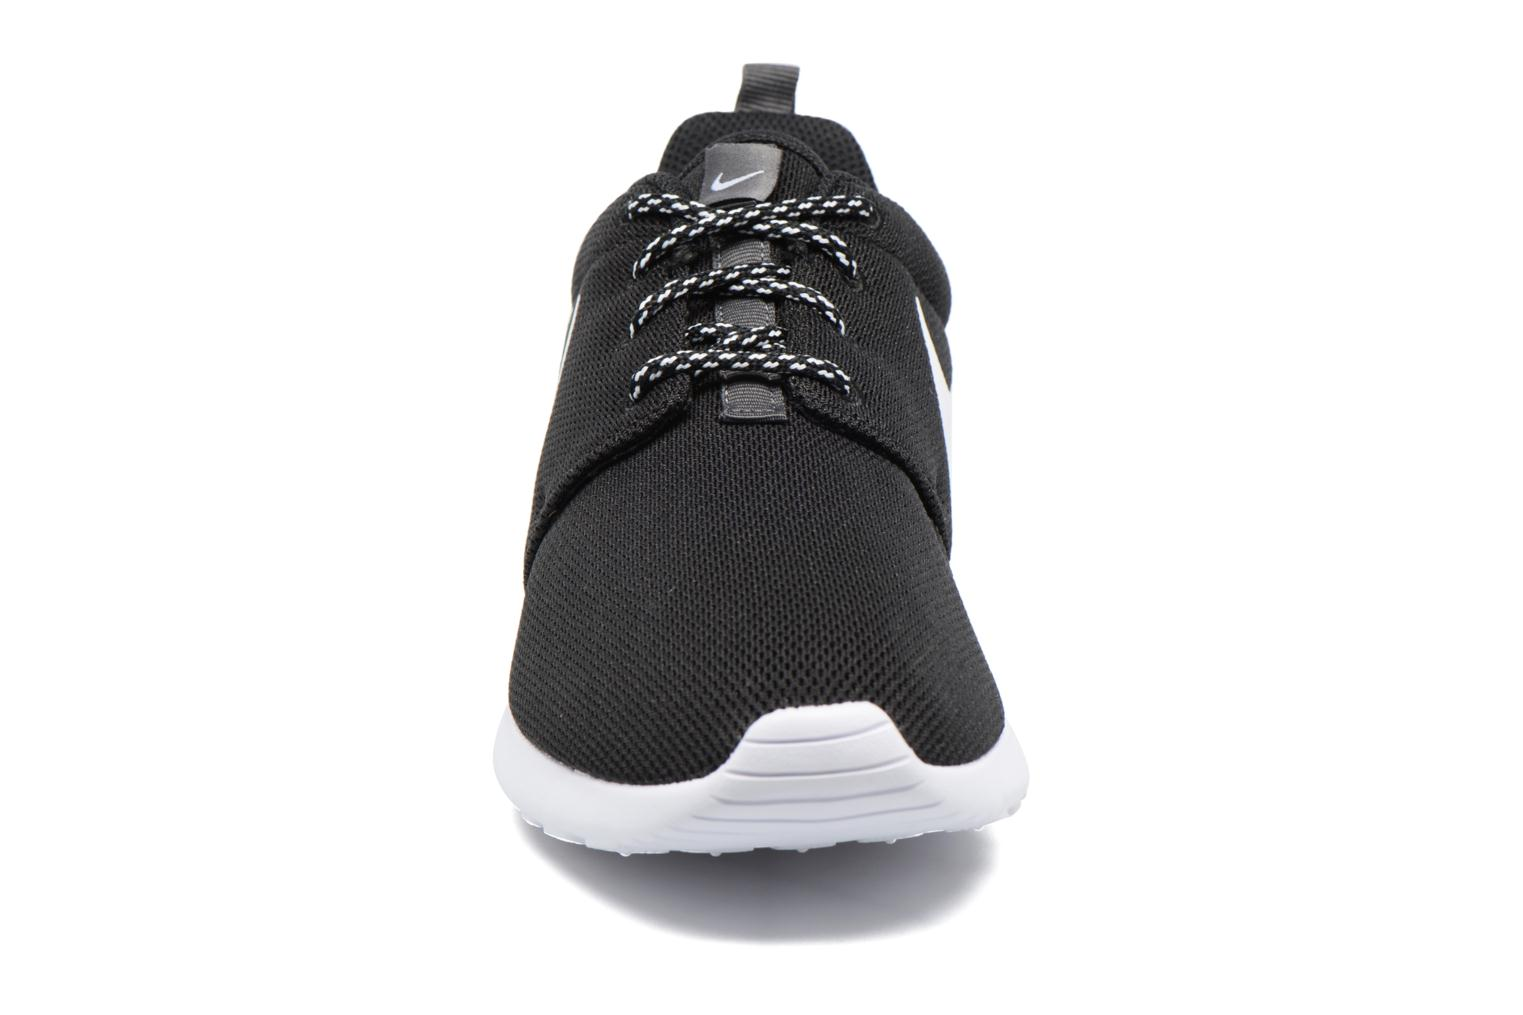 W Nike Roshe One BLACK/WHITE-DARK GREY